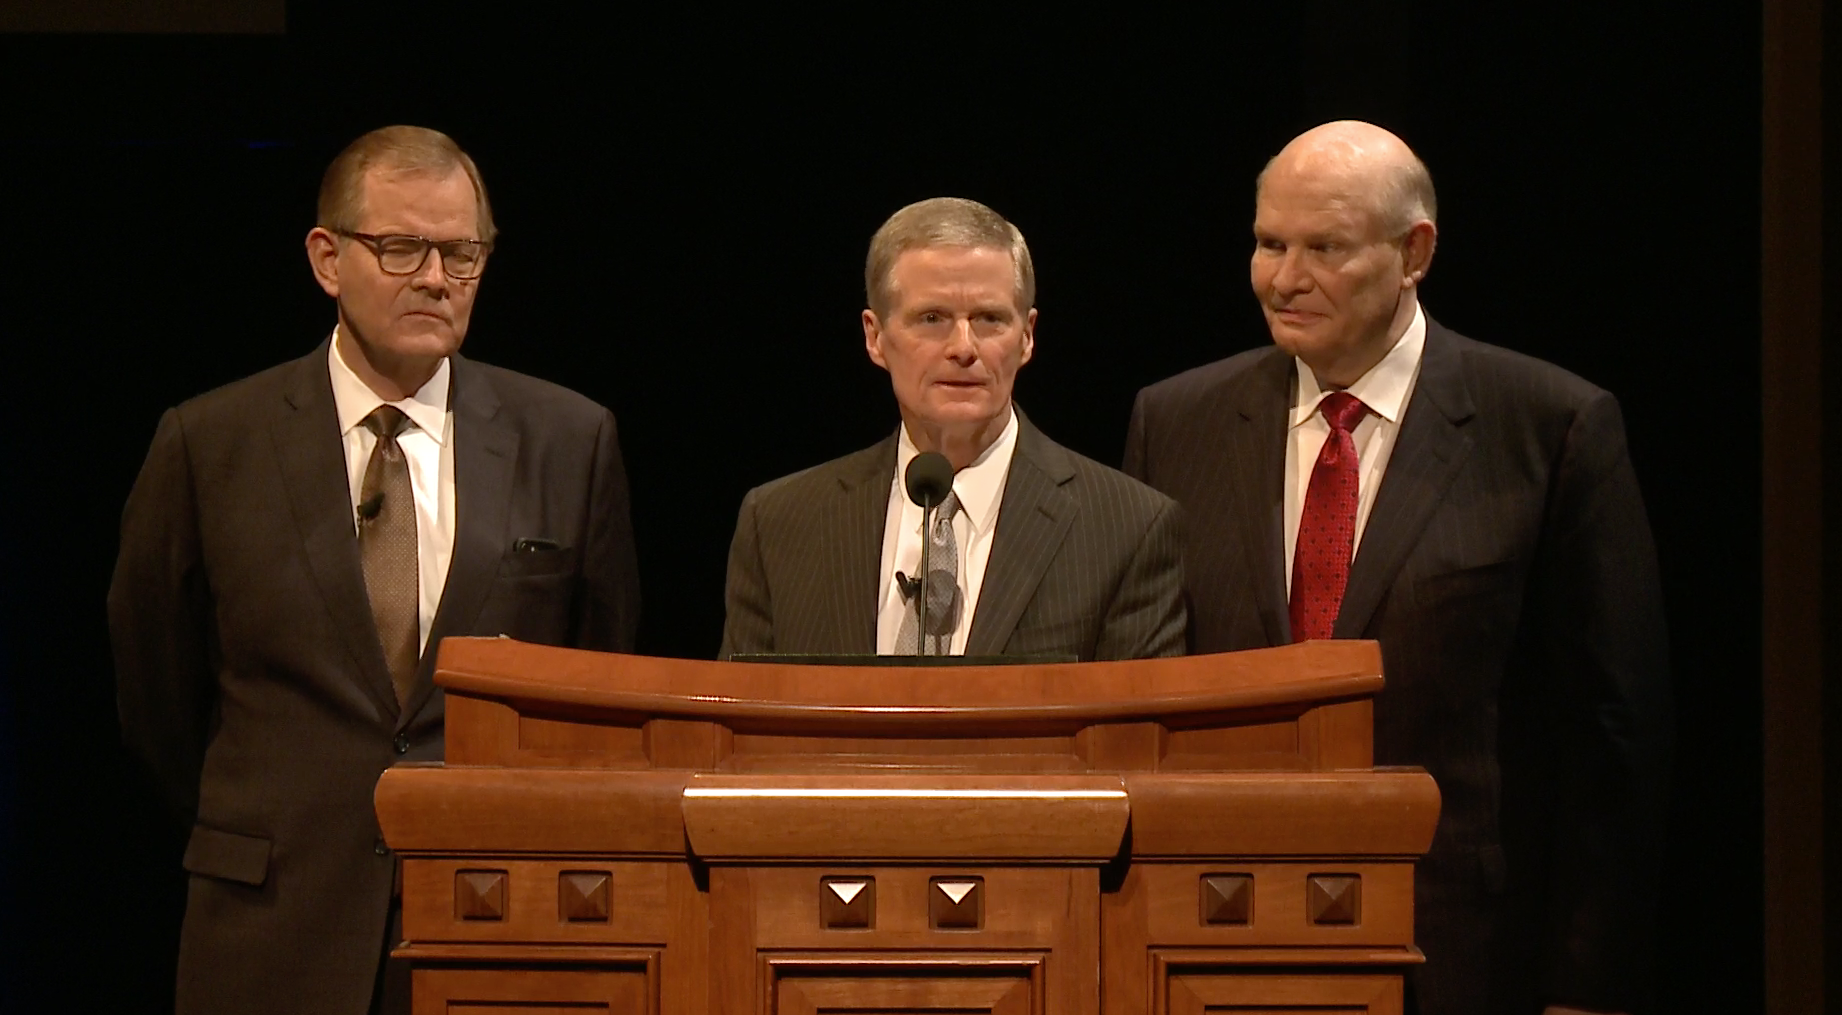 Apostles Elder Gary E. Stevenson, Elder David A. Bednar and Elder Dale G. Renlund participate in an instruction meeting for ward and stake leaders and members involved in temple and family history work. The image is from a screenshot from the Feb. 28 broadcast.